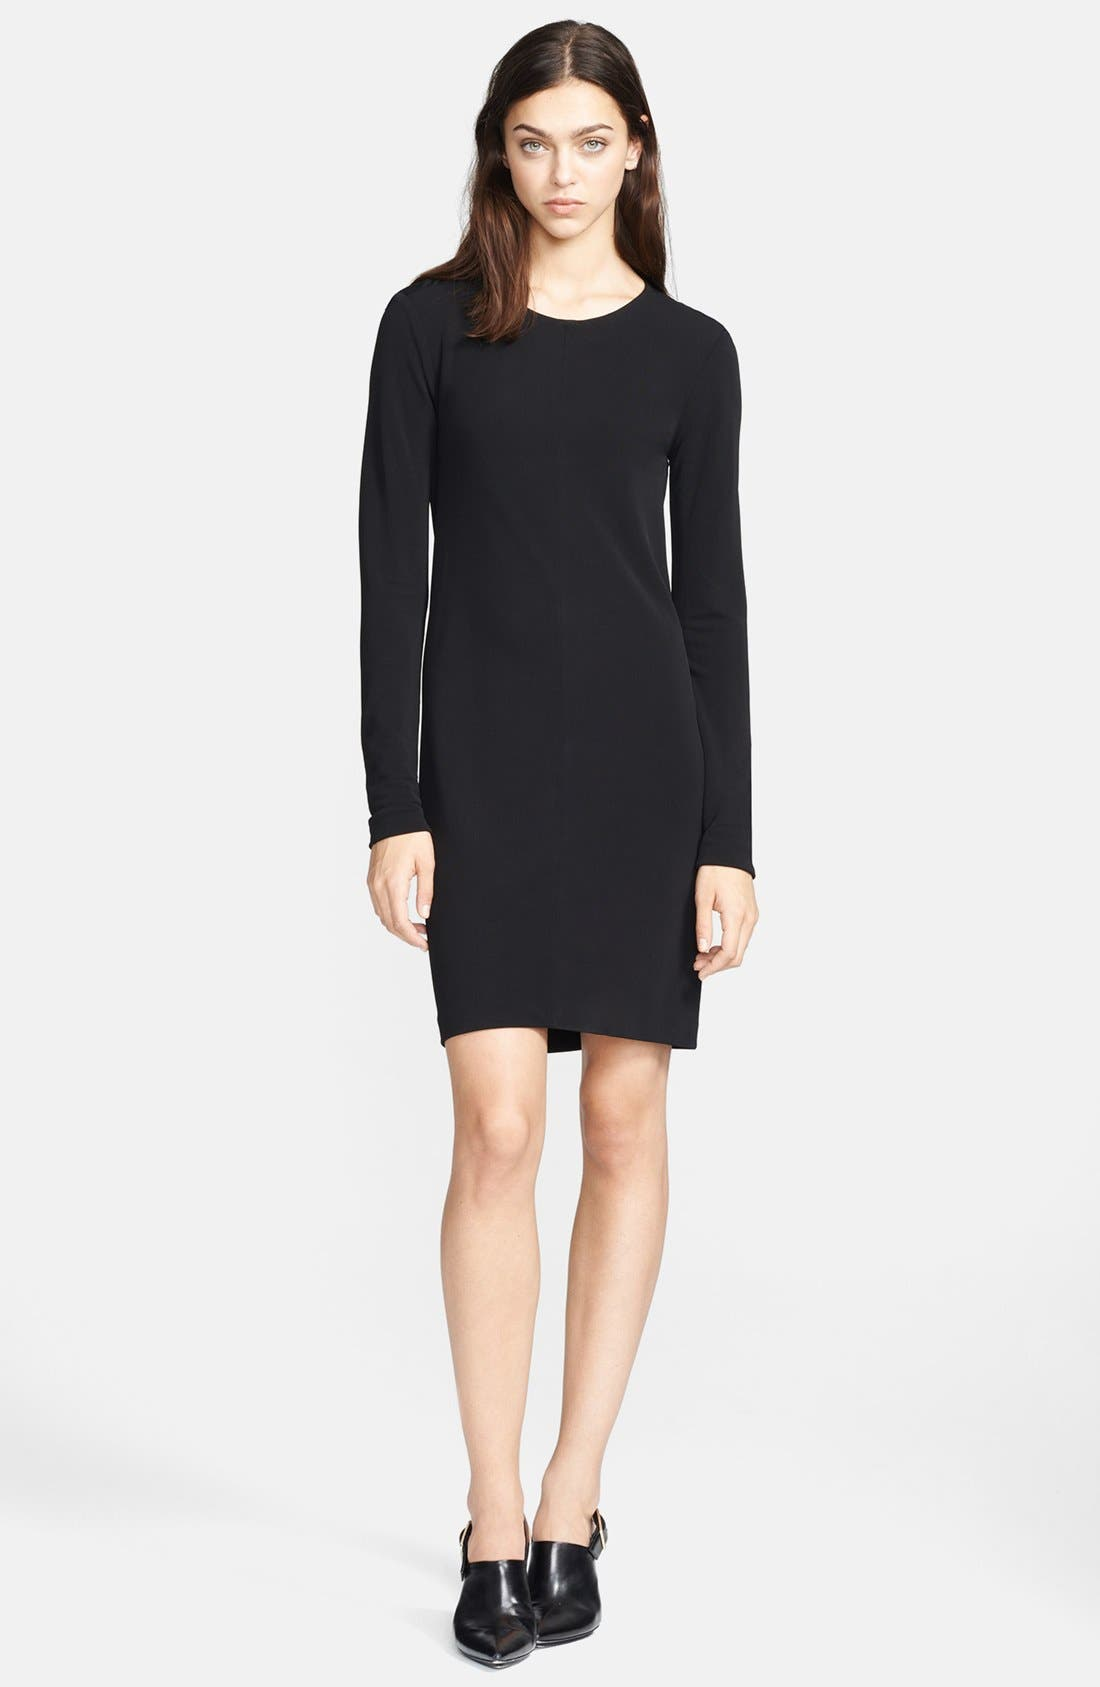 Alternate Image 1 Selected - T by Alexander Wang Cowl Back Matte Jersey Dress